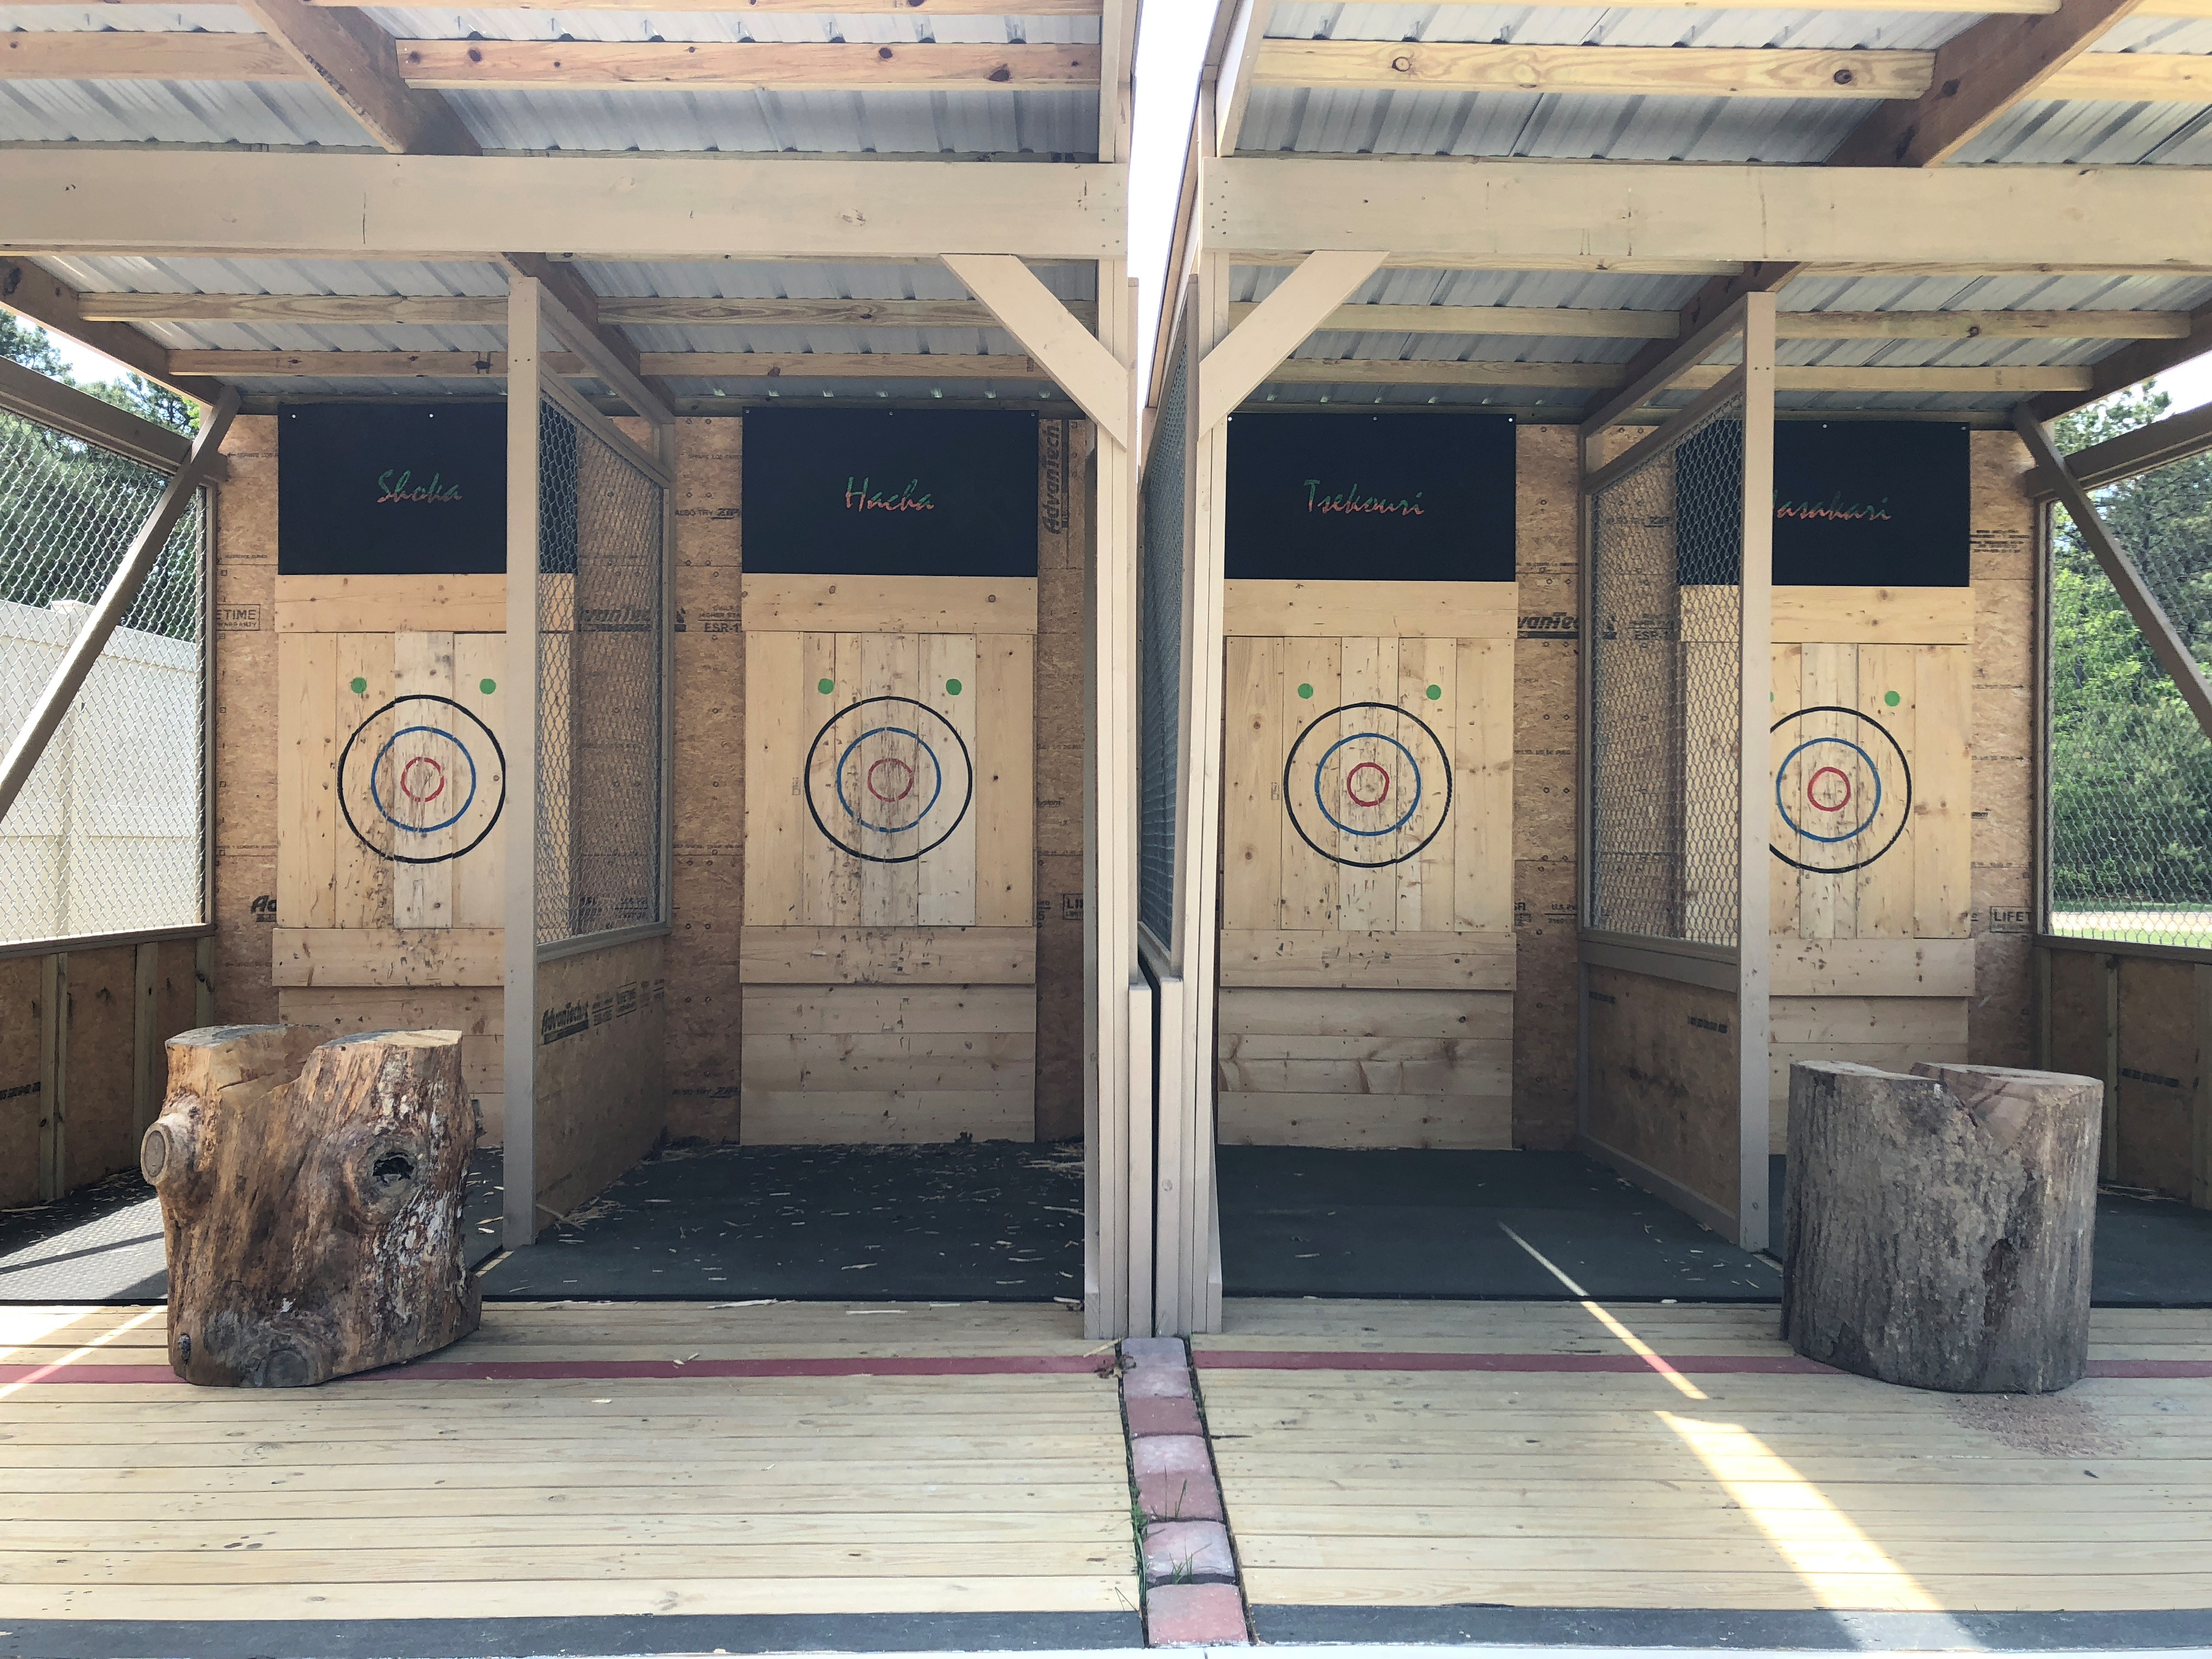 Image of targets at New Jersey Motorsports Park in Millville NJ